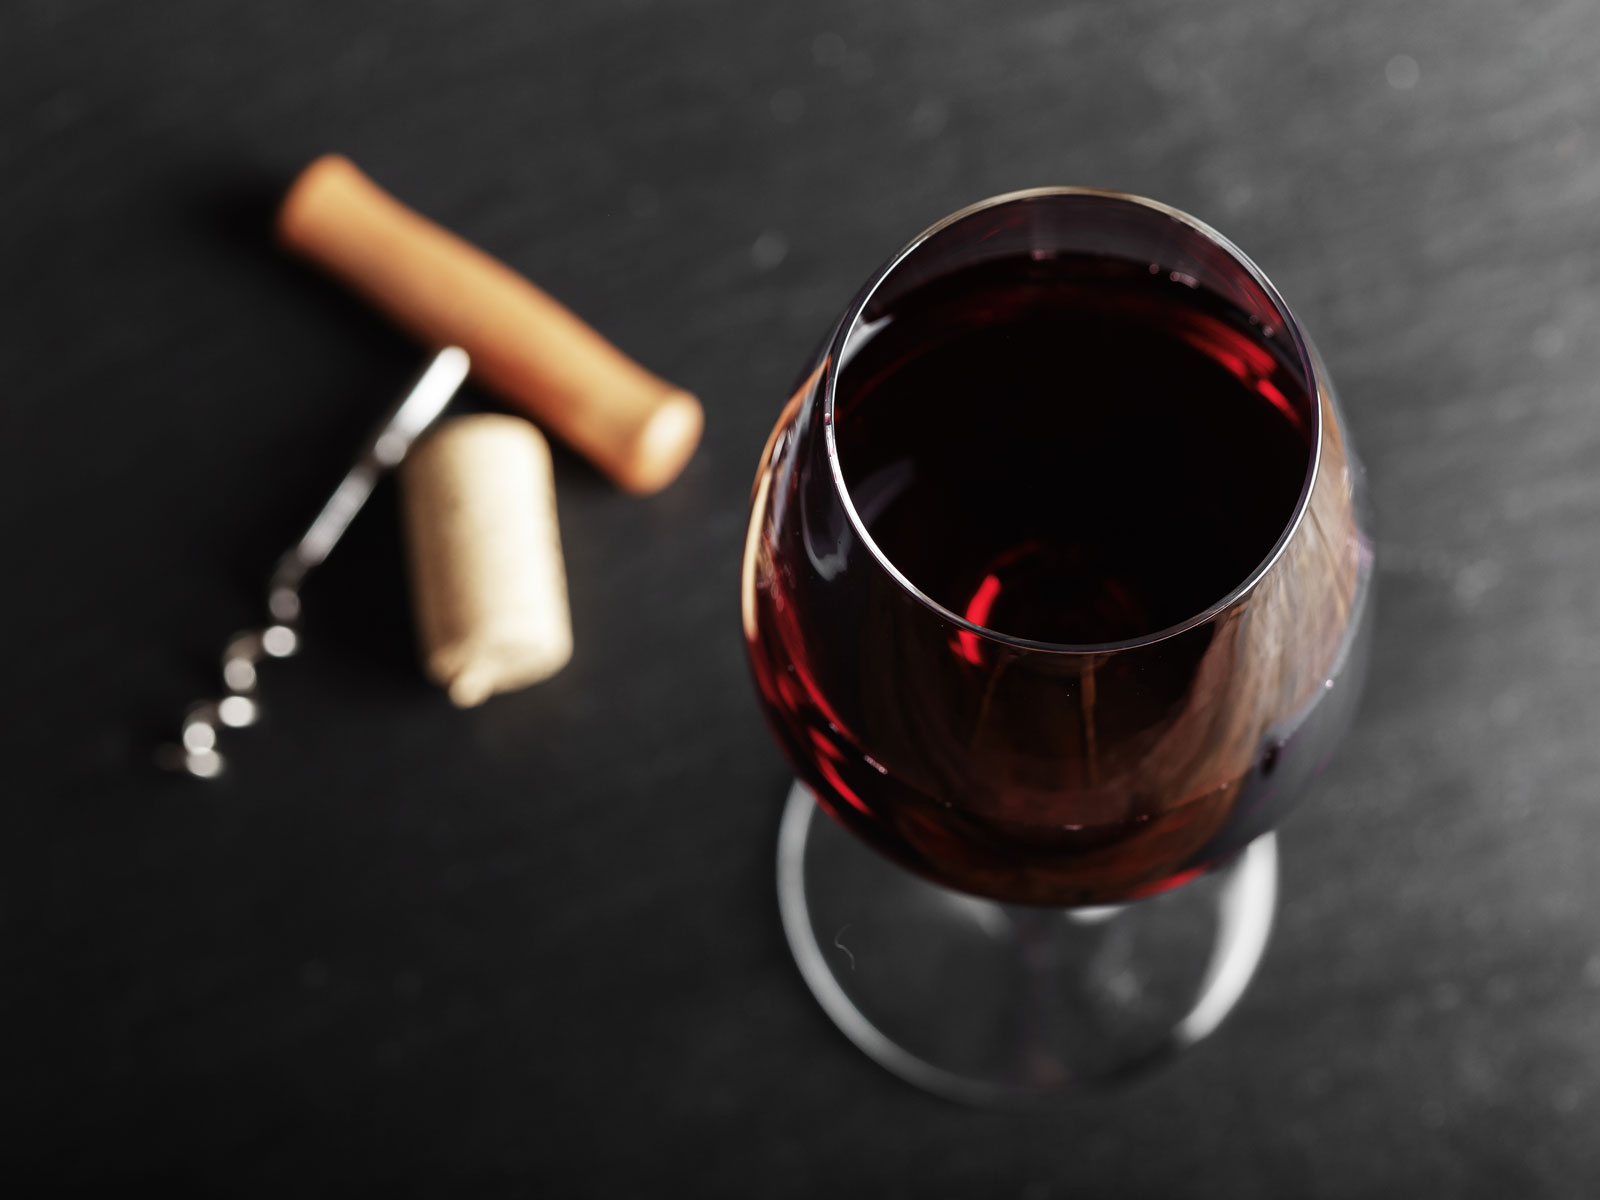 How Do You Prevent Wine Fraud? With Blockchain-Enabled Labels